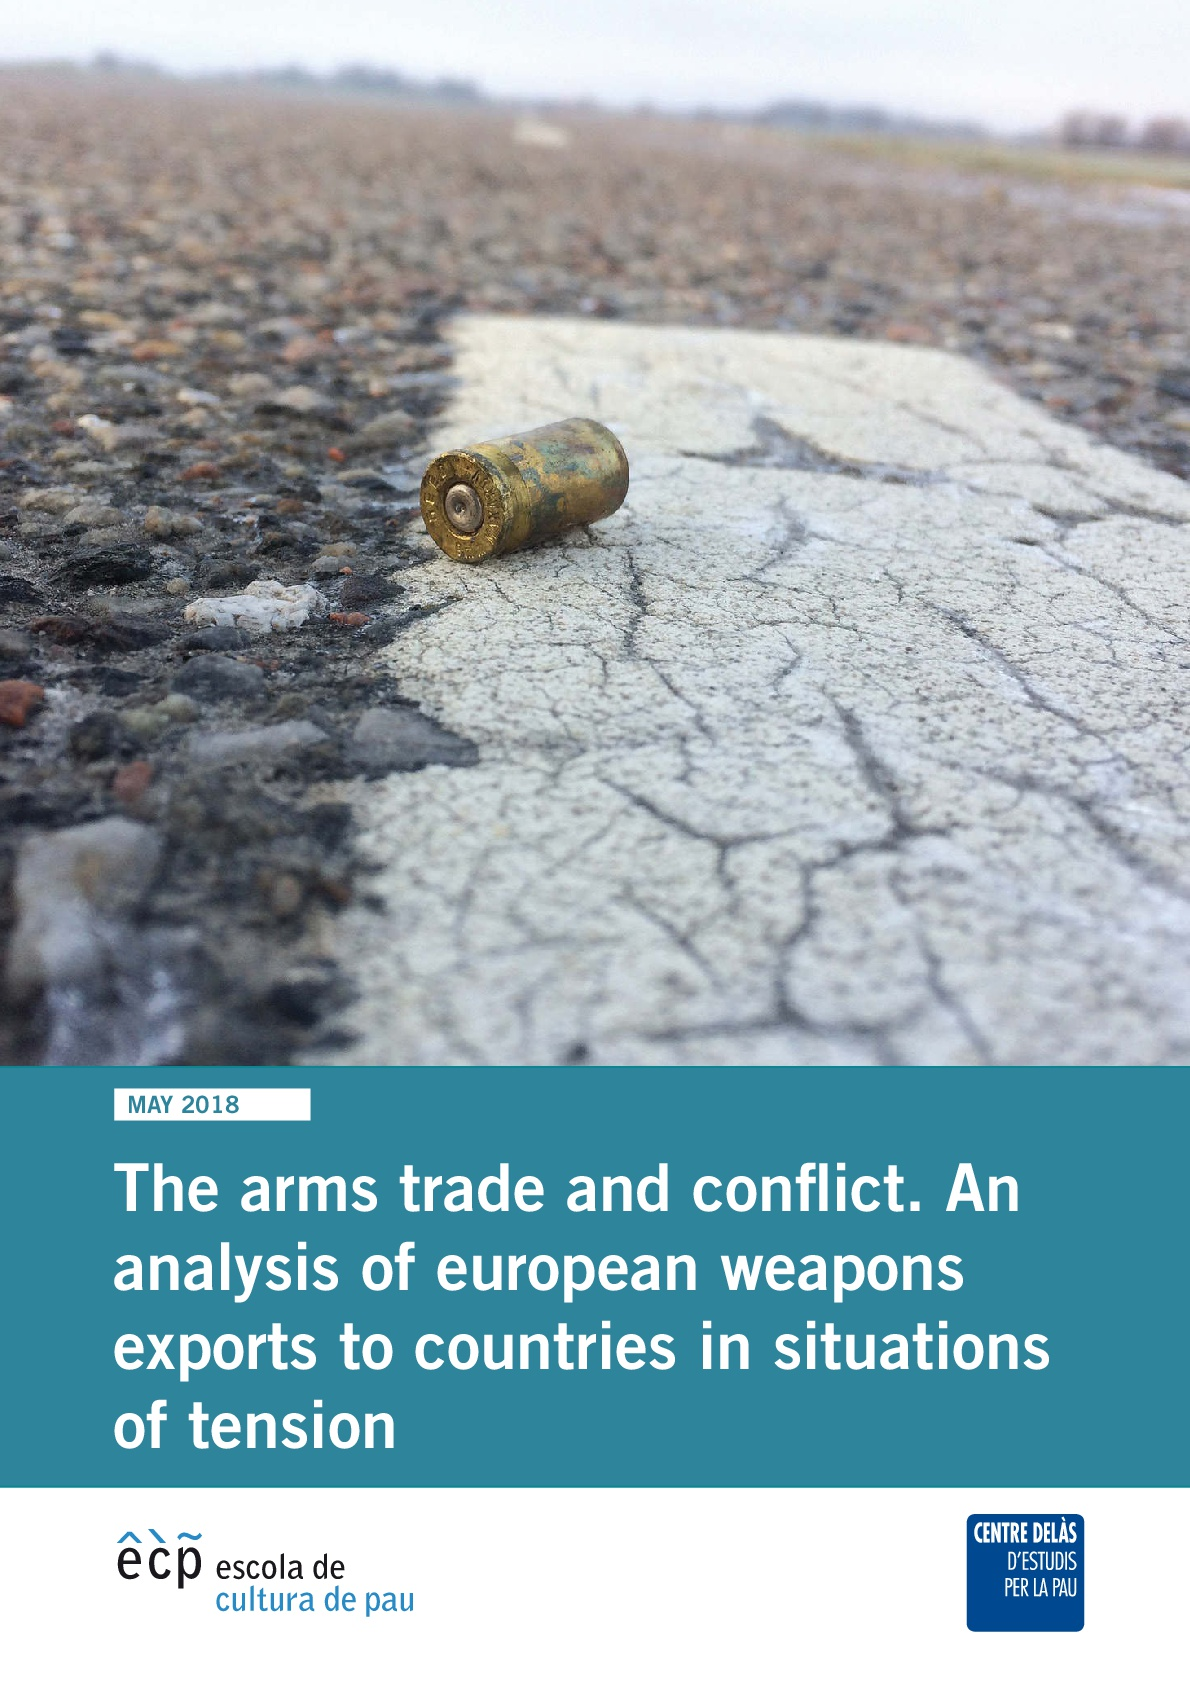 Report of Delàs Center and ECP: Arms trade and conflicts. Analysis of European exports to countries in tension